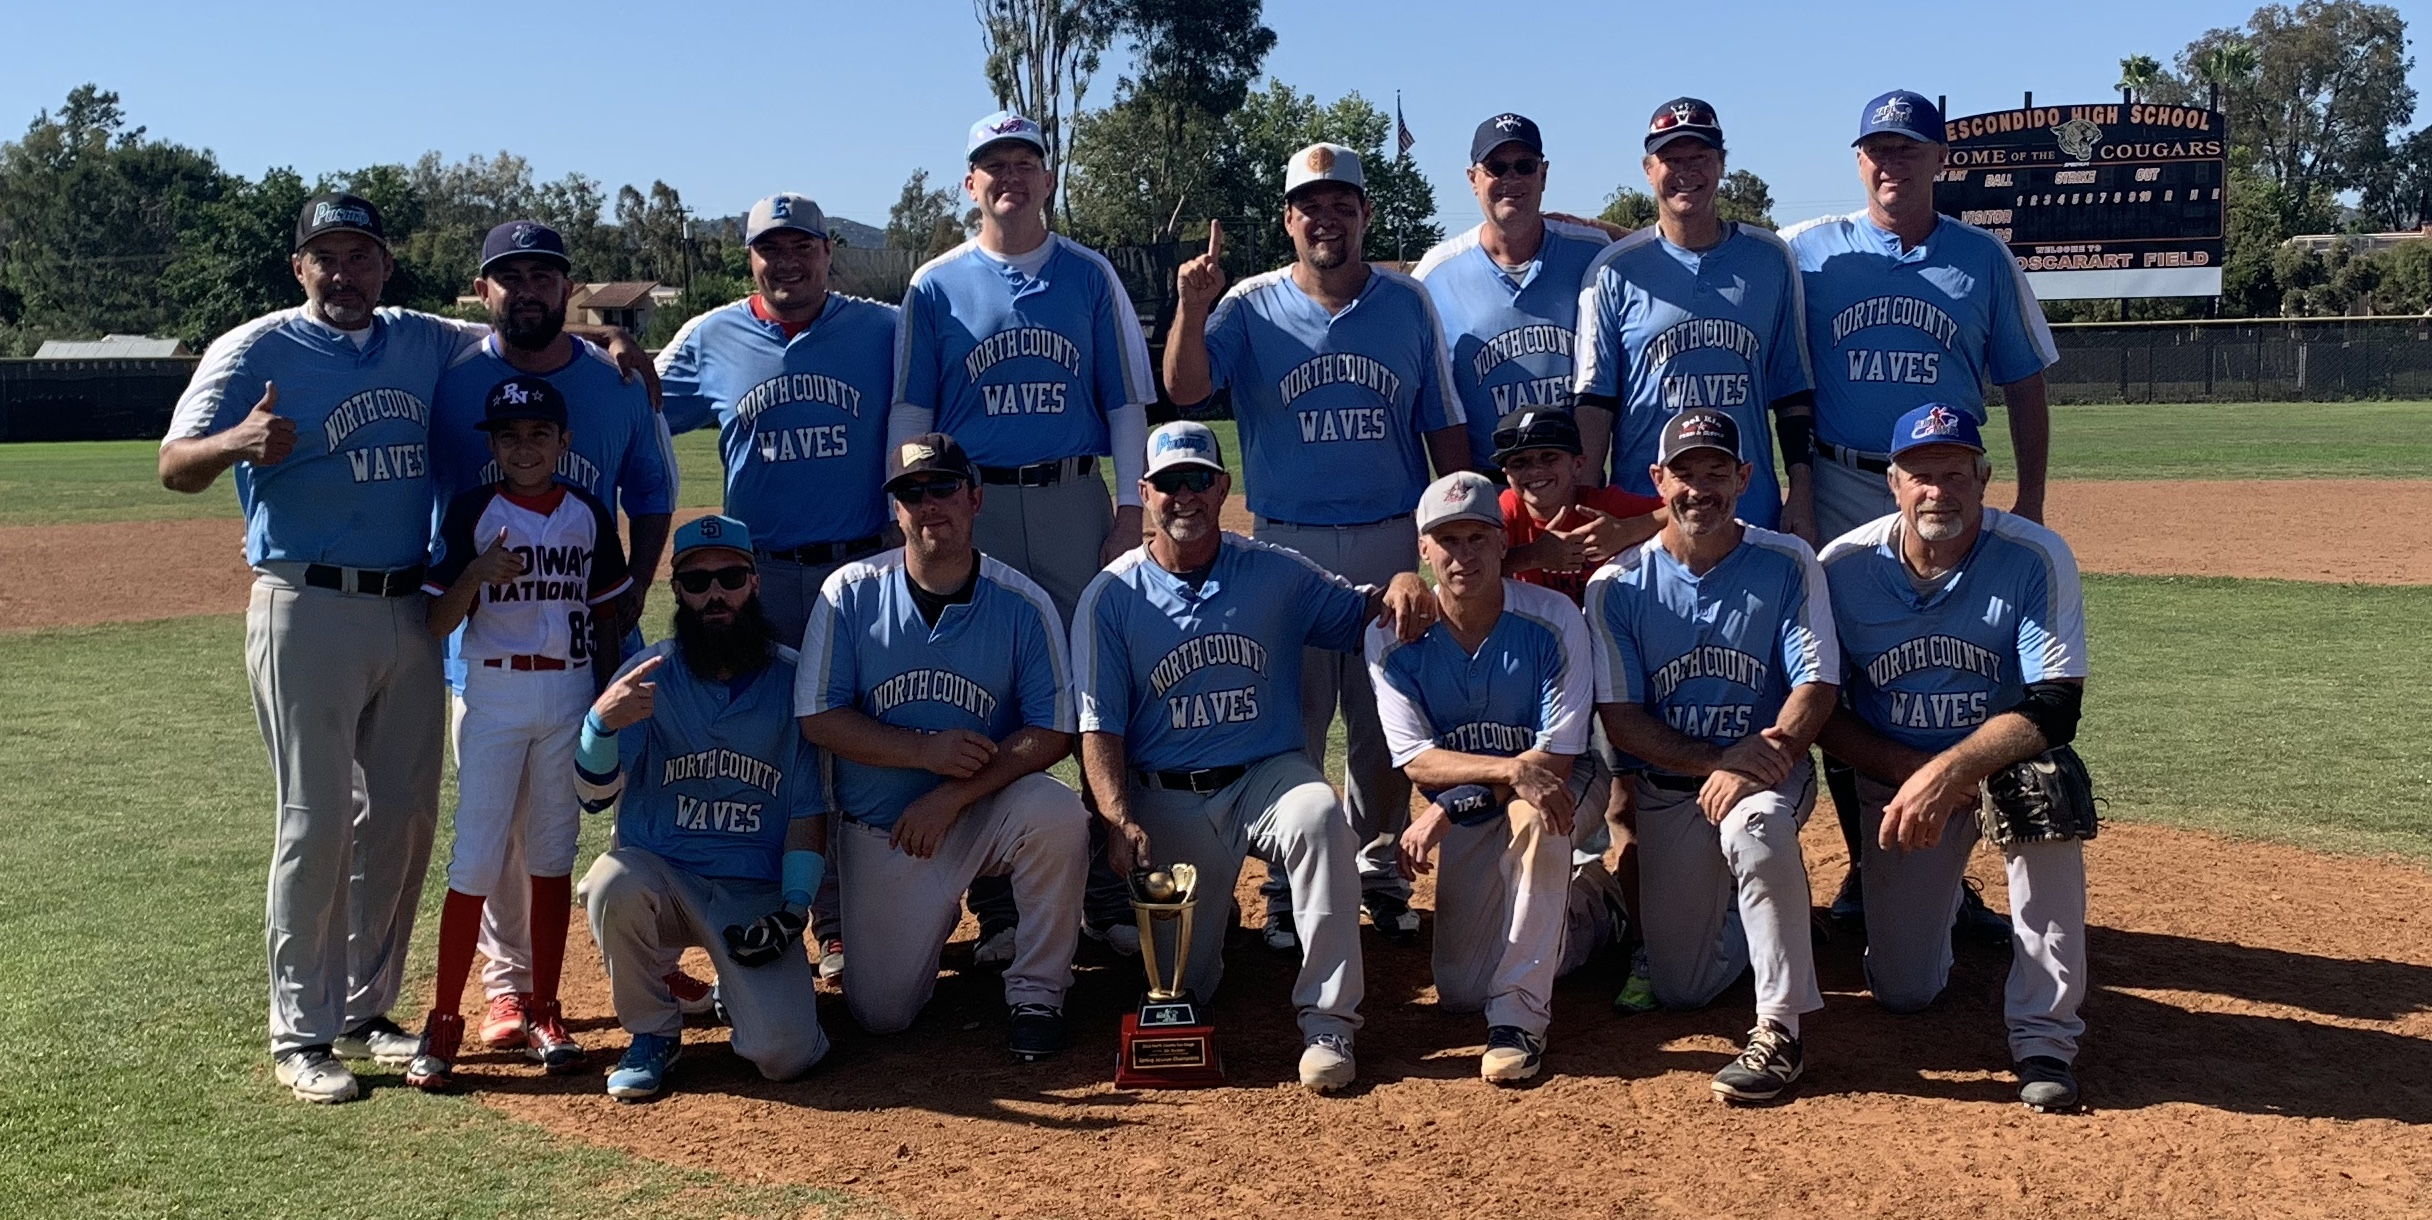 Congratulations to the  North County Waves, 2019 MSBL 35+ Division Spring Champions